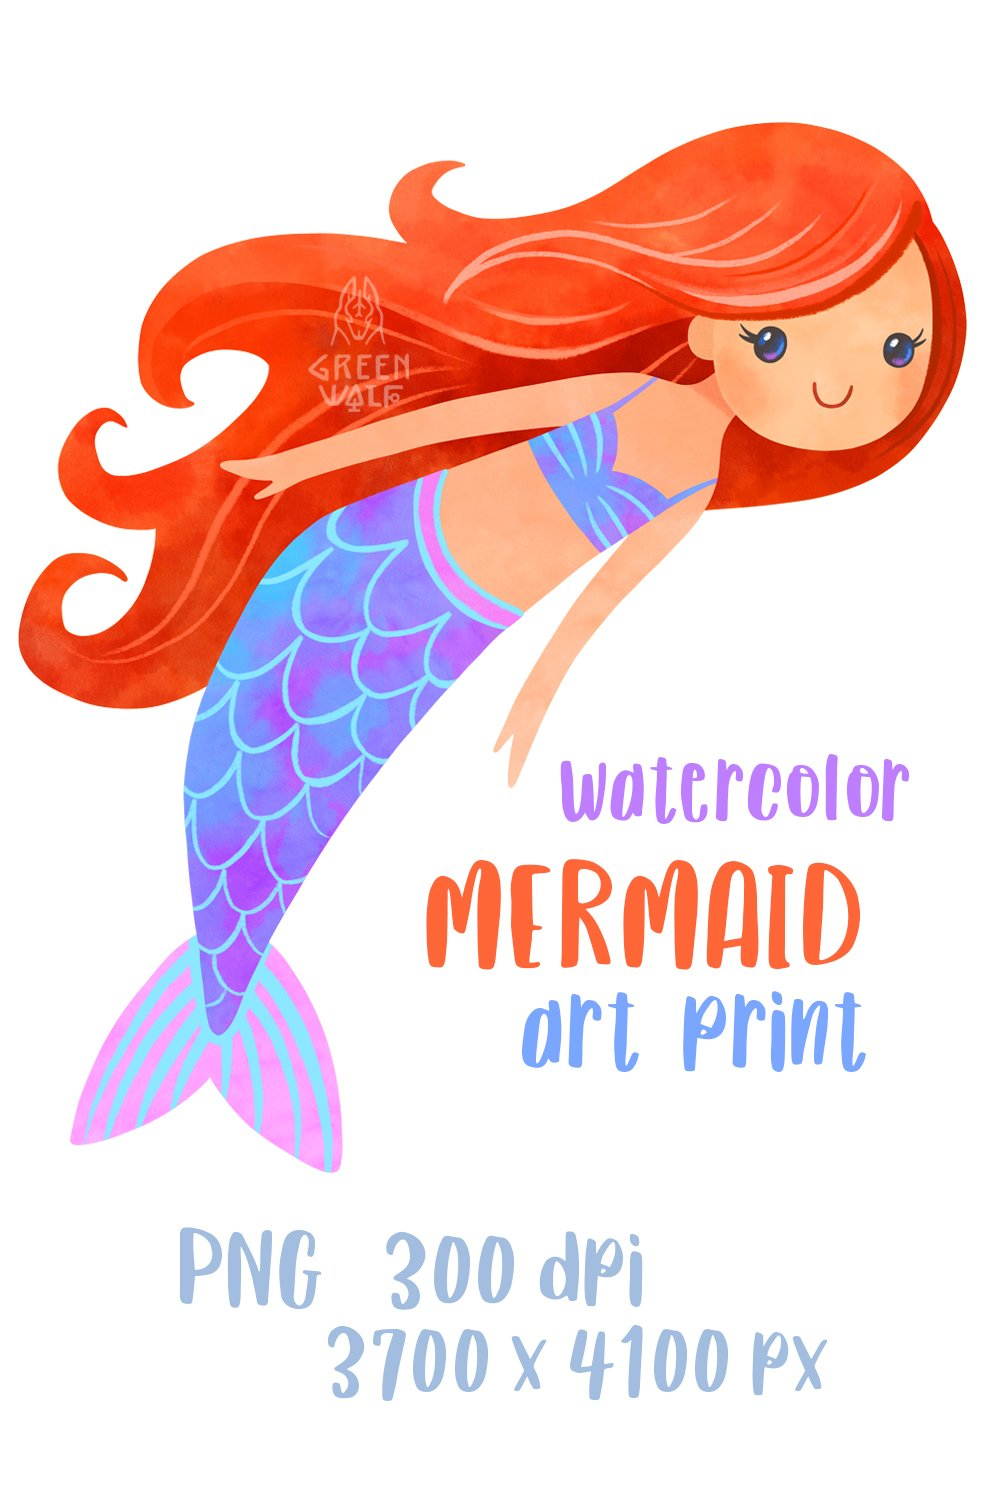 Watercolor mermaid t shirt print for girl PNG Sublimation example image 4